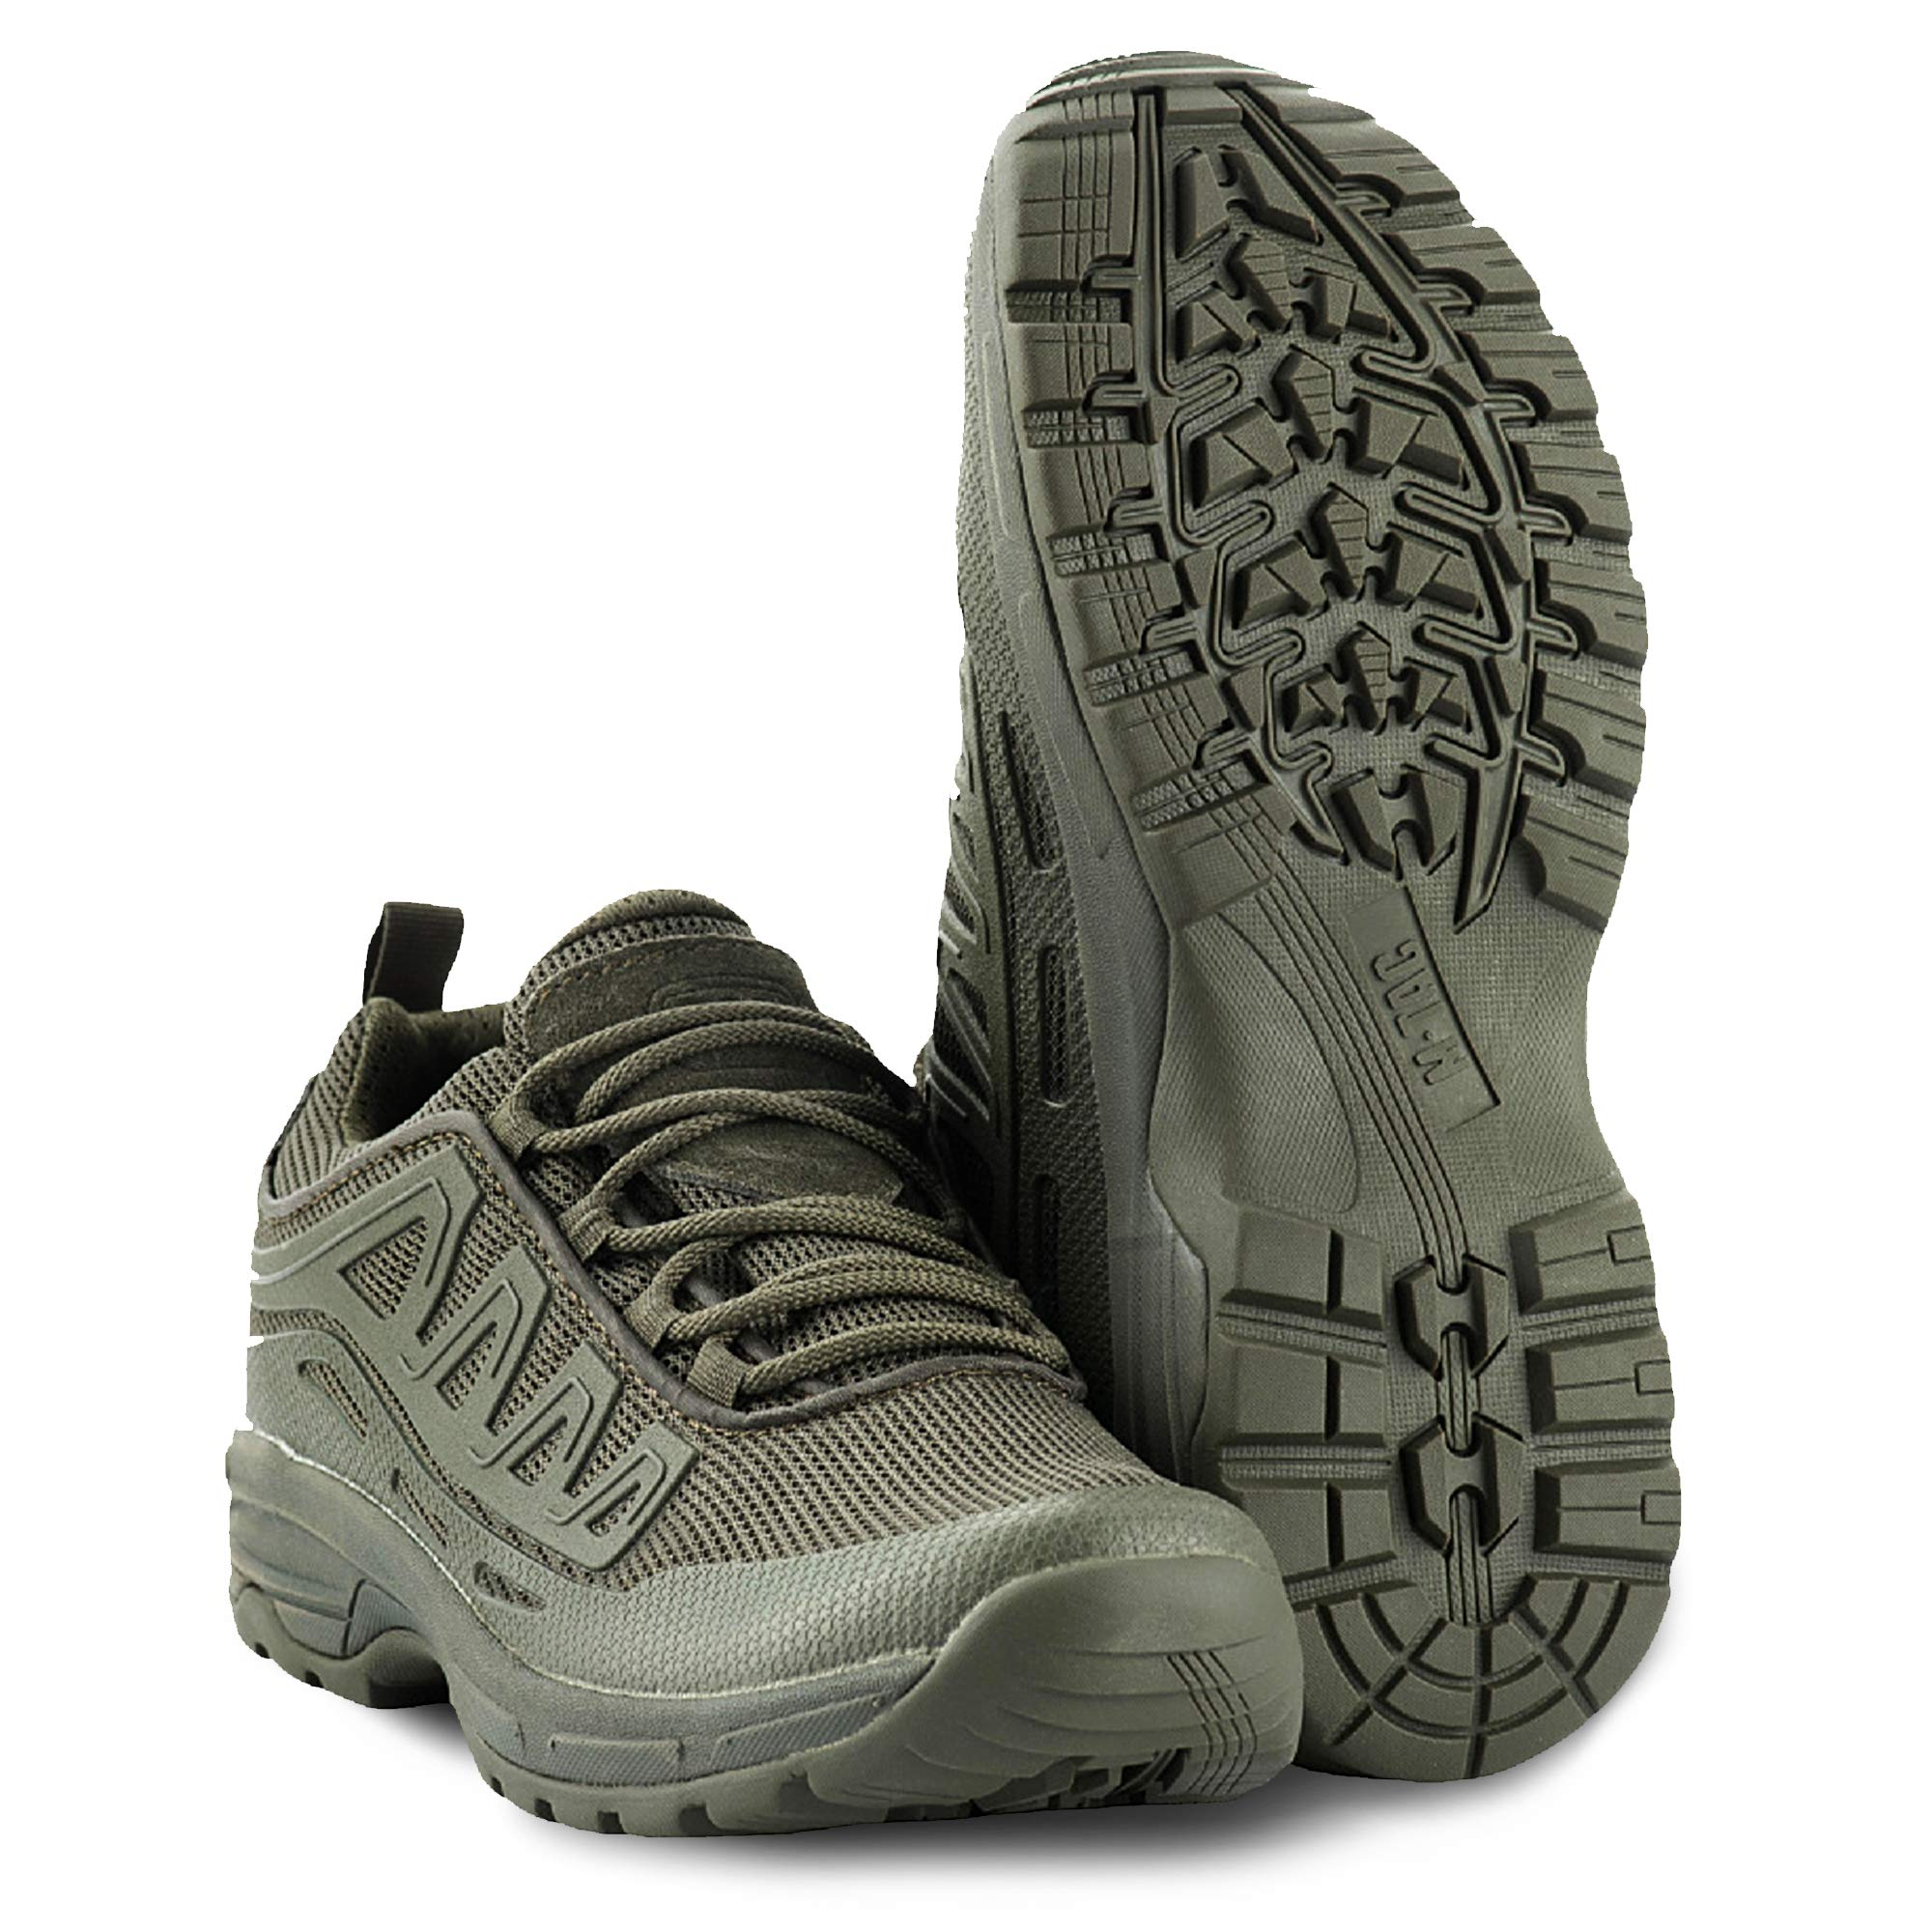 M-Tac Tactical Combat Shoes Men Hiking Police Sneakers for Trail Running